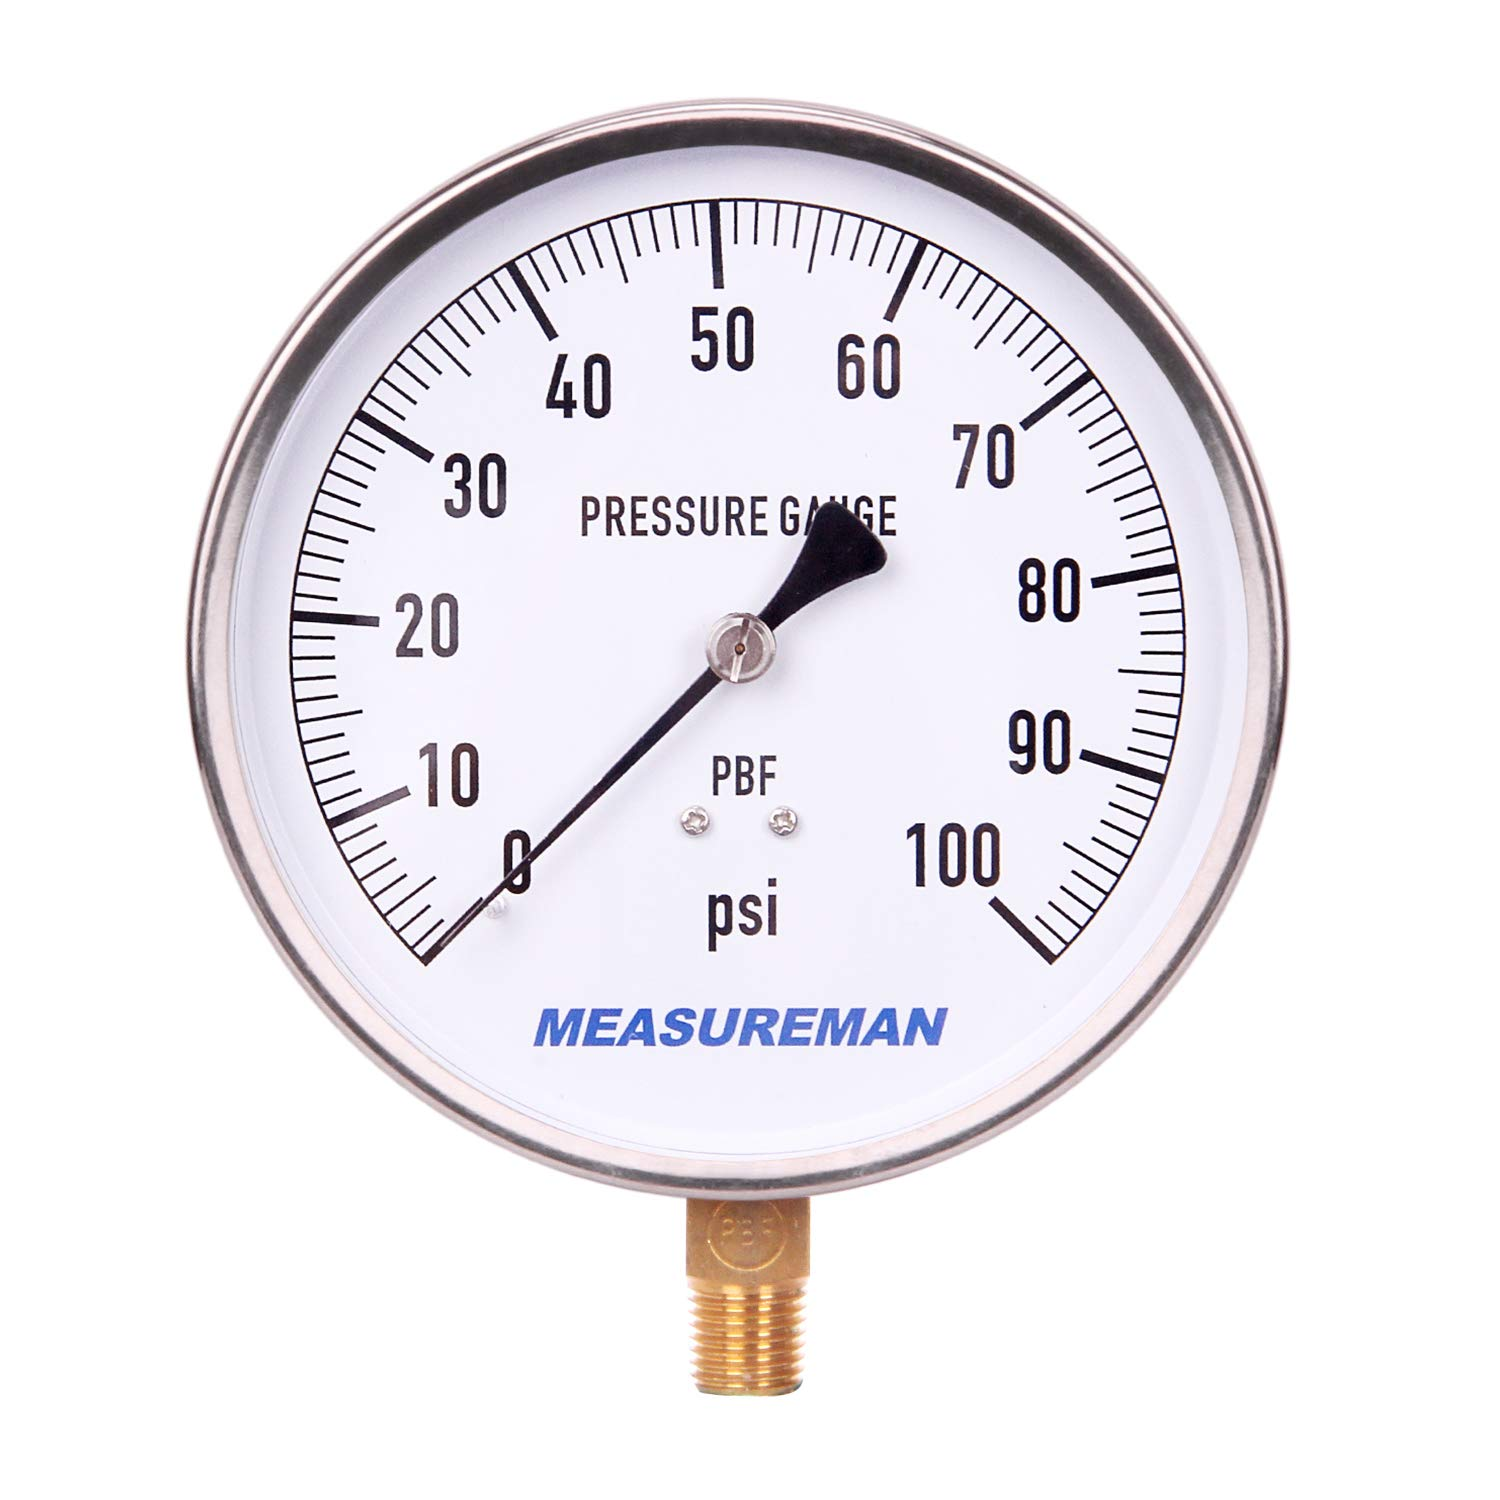 """MEASUREMAN 304 Stainless Steel Case, Lead Free Contractor Pressure Gauge, 0-100Psi, 4-1/2"""" Dial Size, 1% Accuracy, 1/4"""" NPT Lower Mount"""